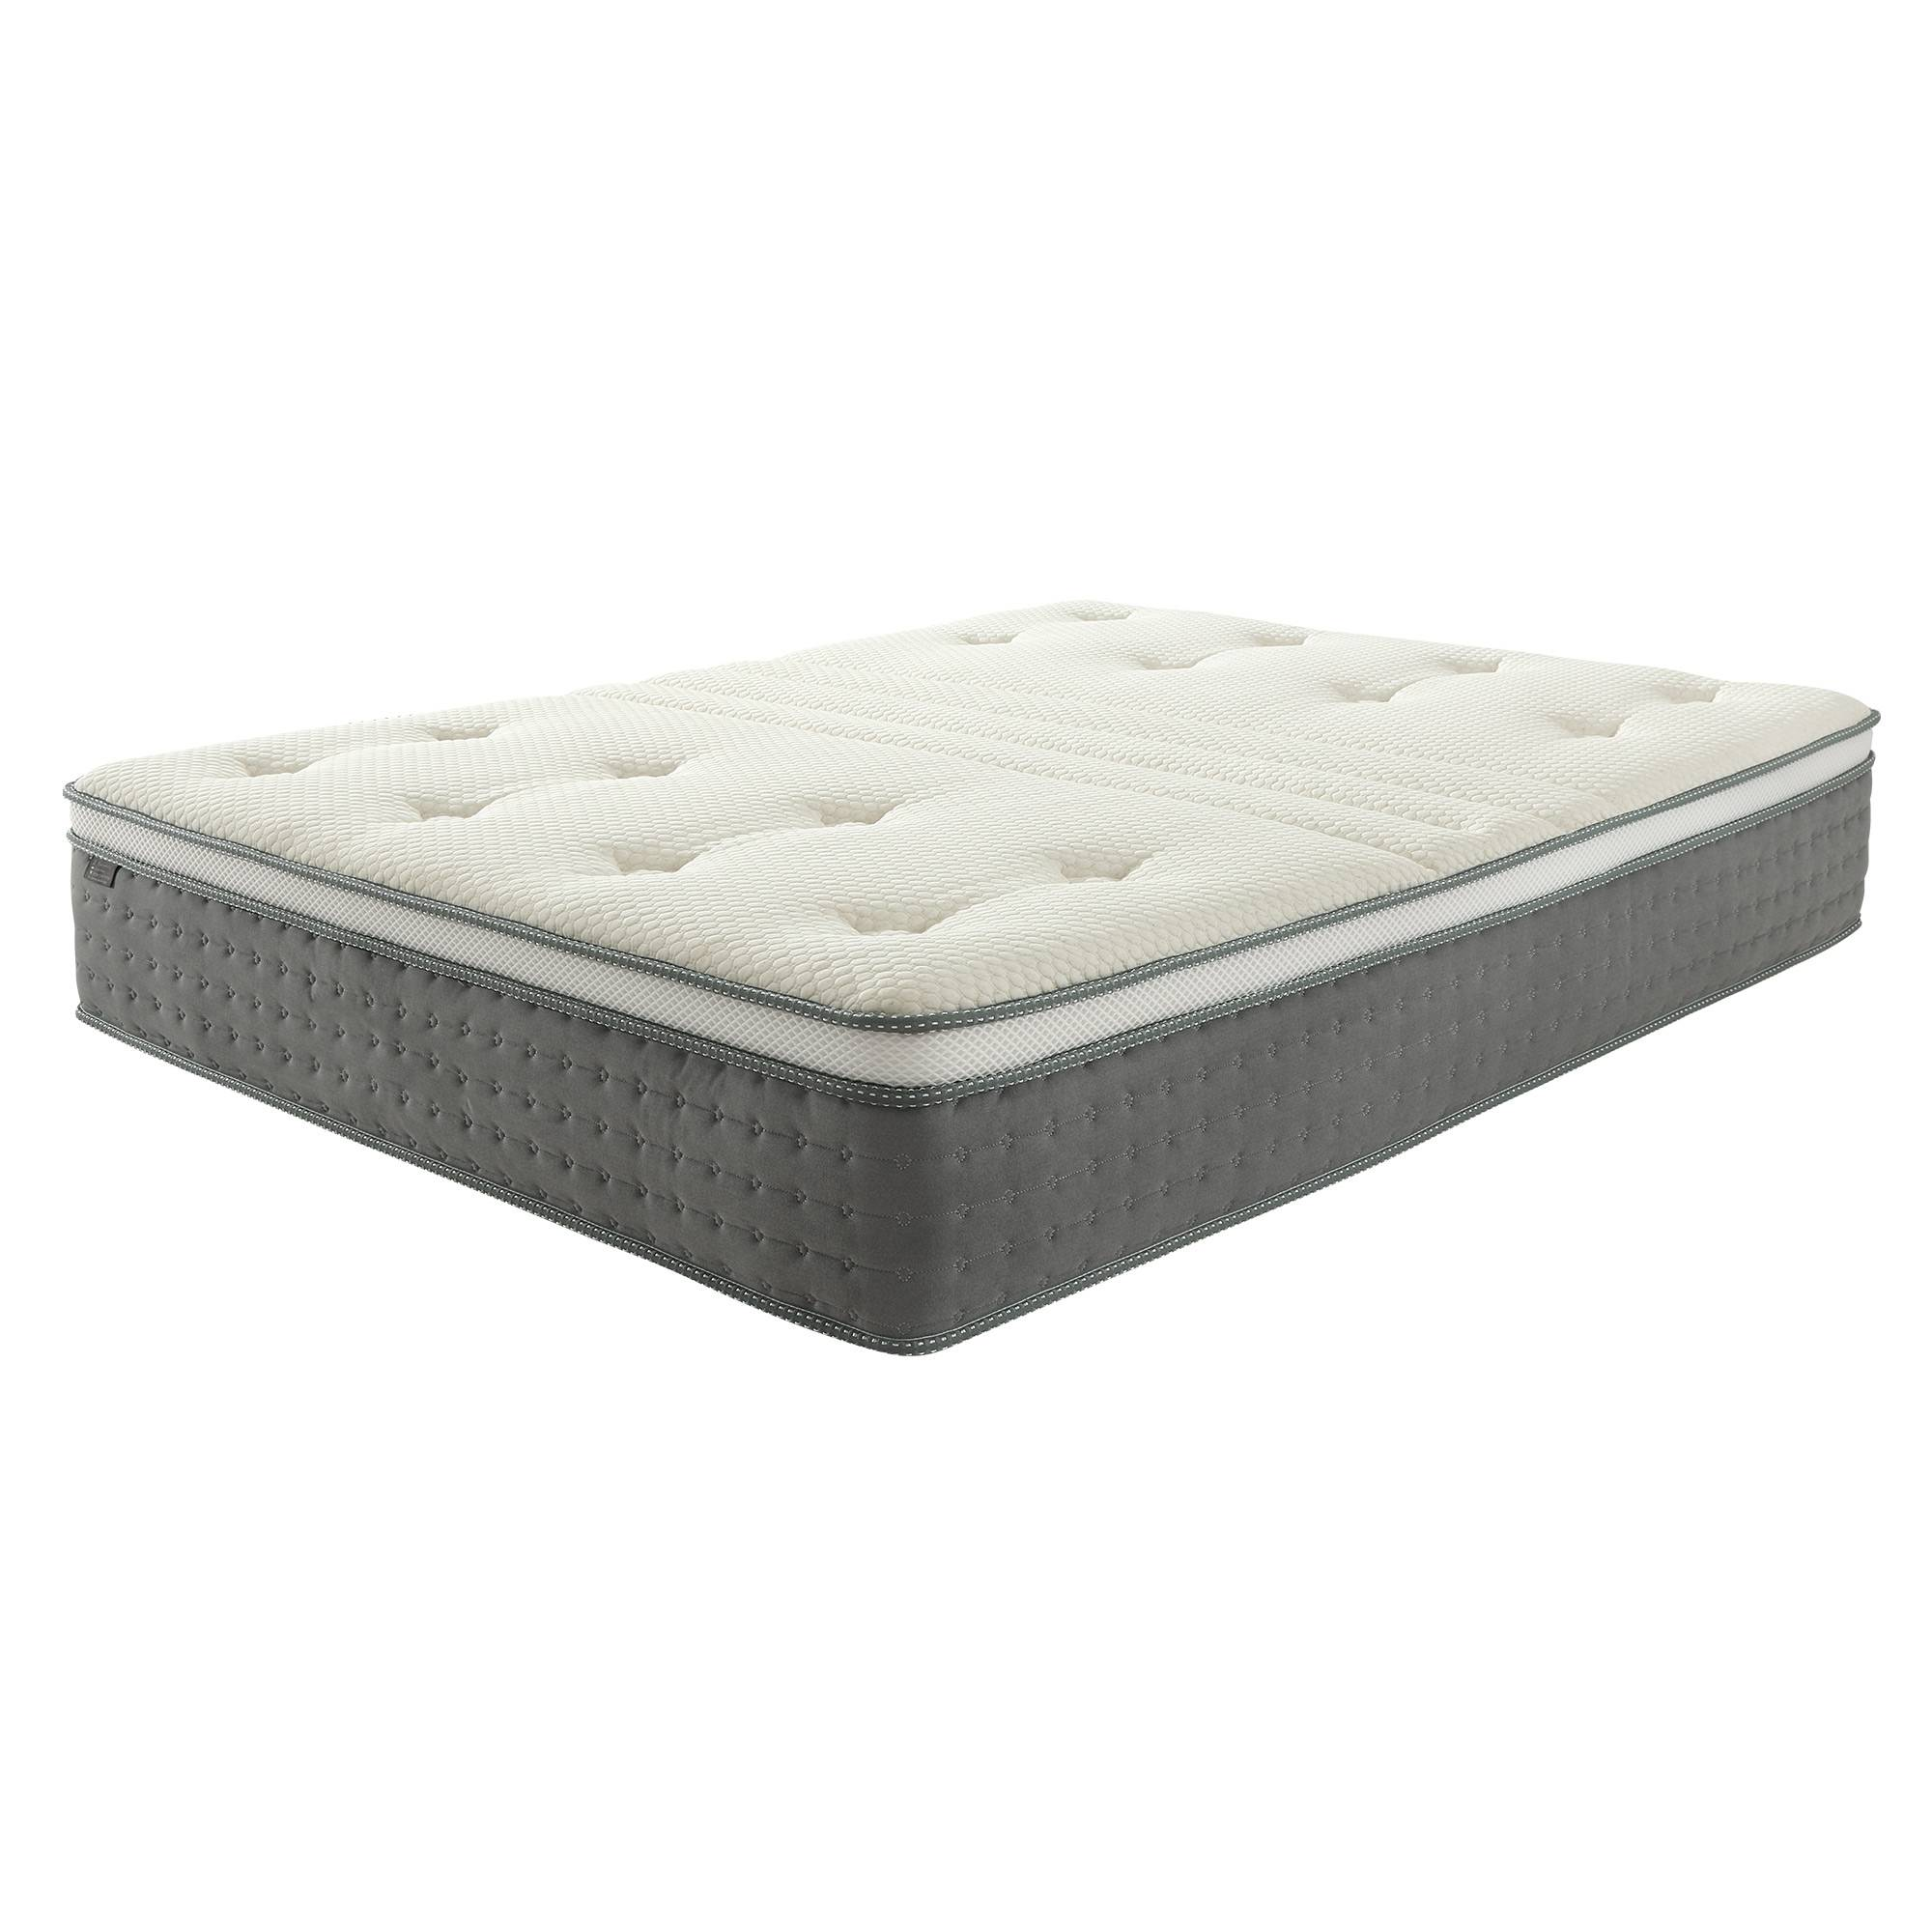 Super edurance balance comfortable mattress 12″